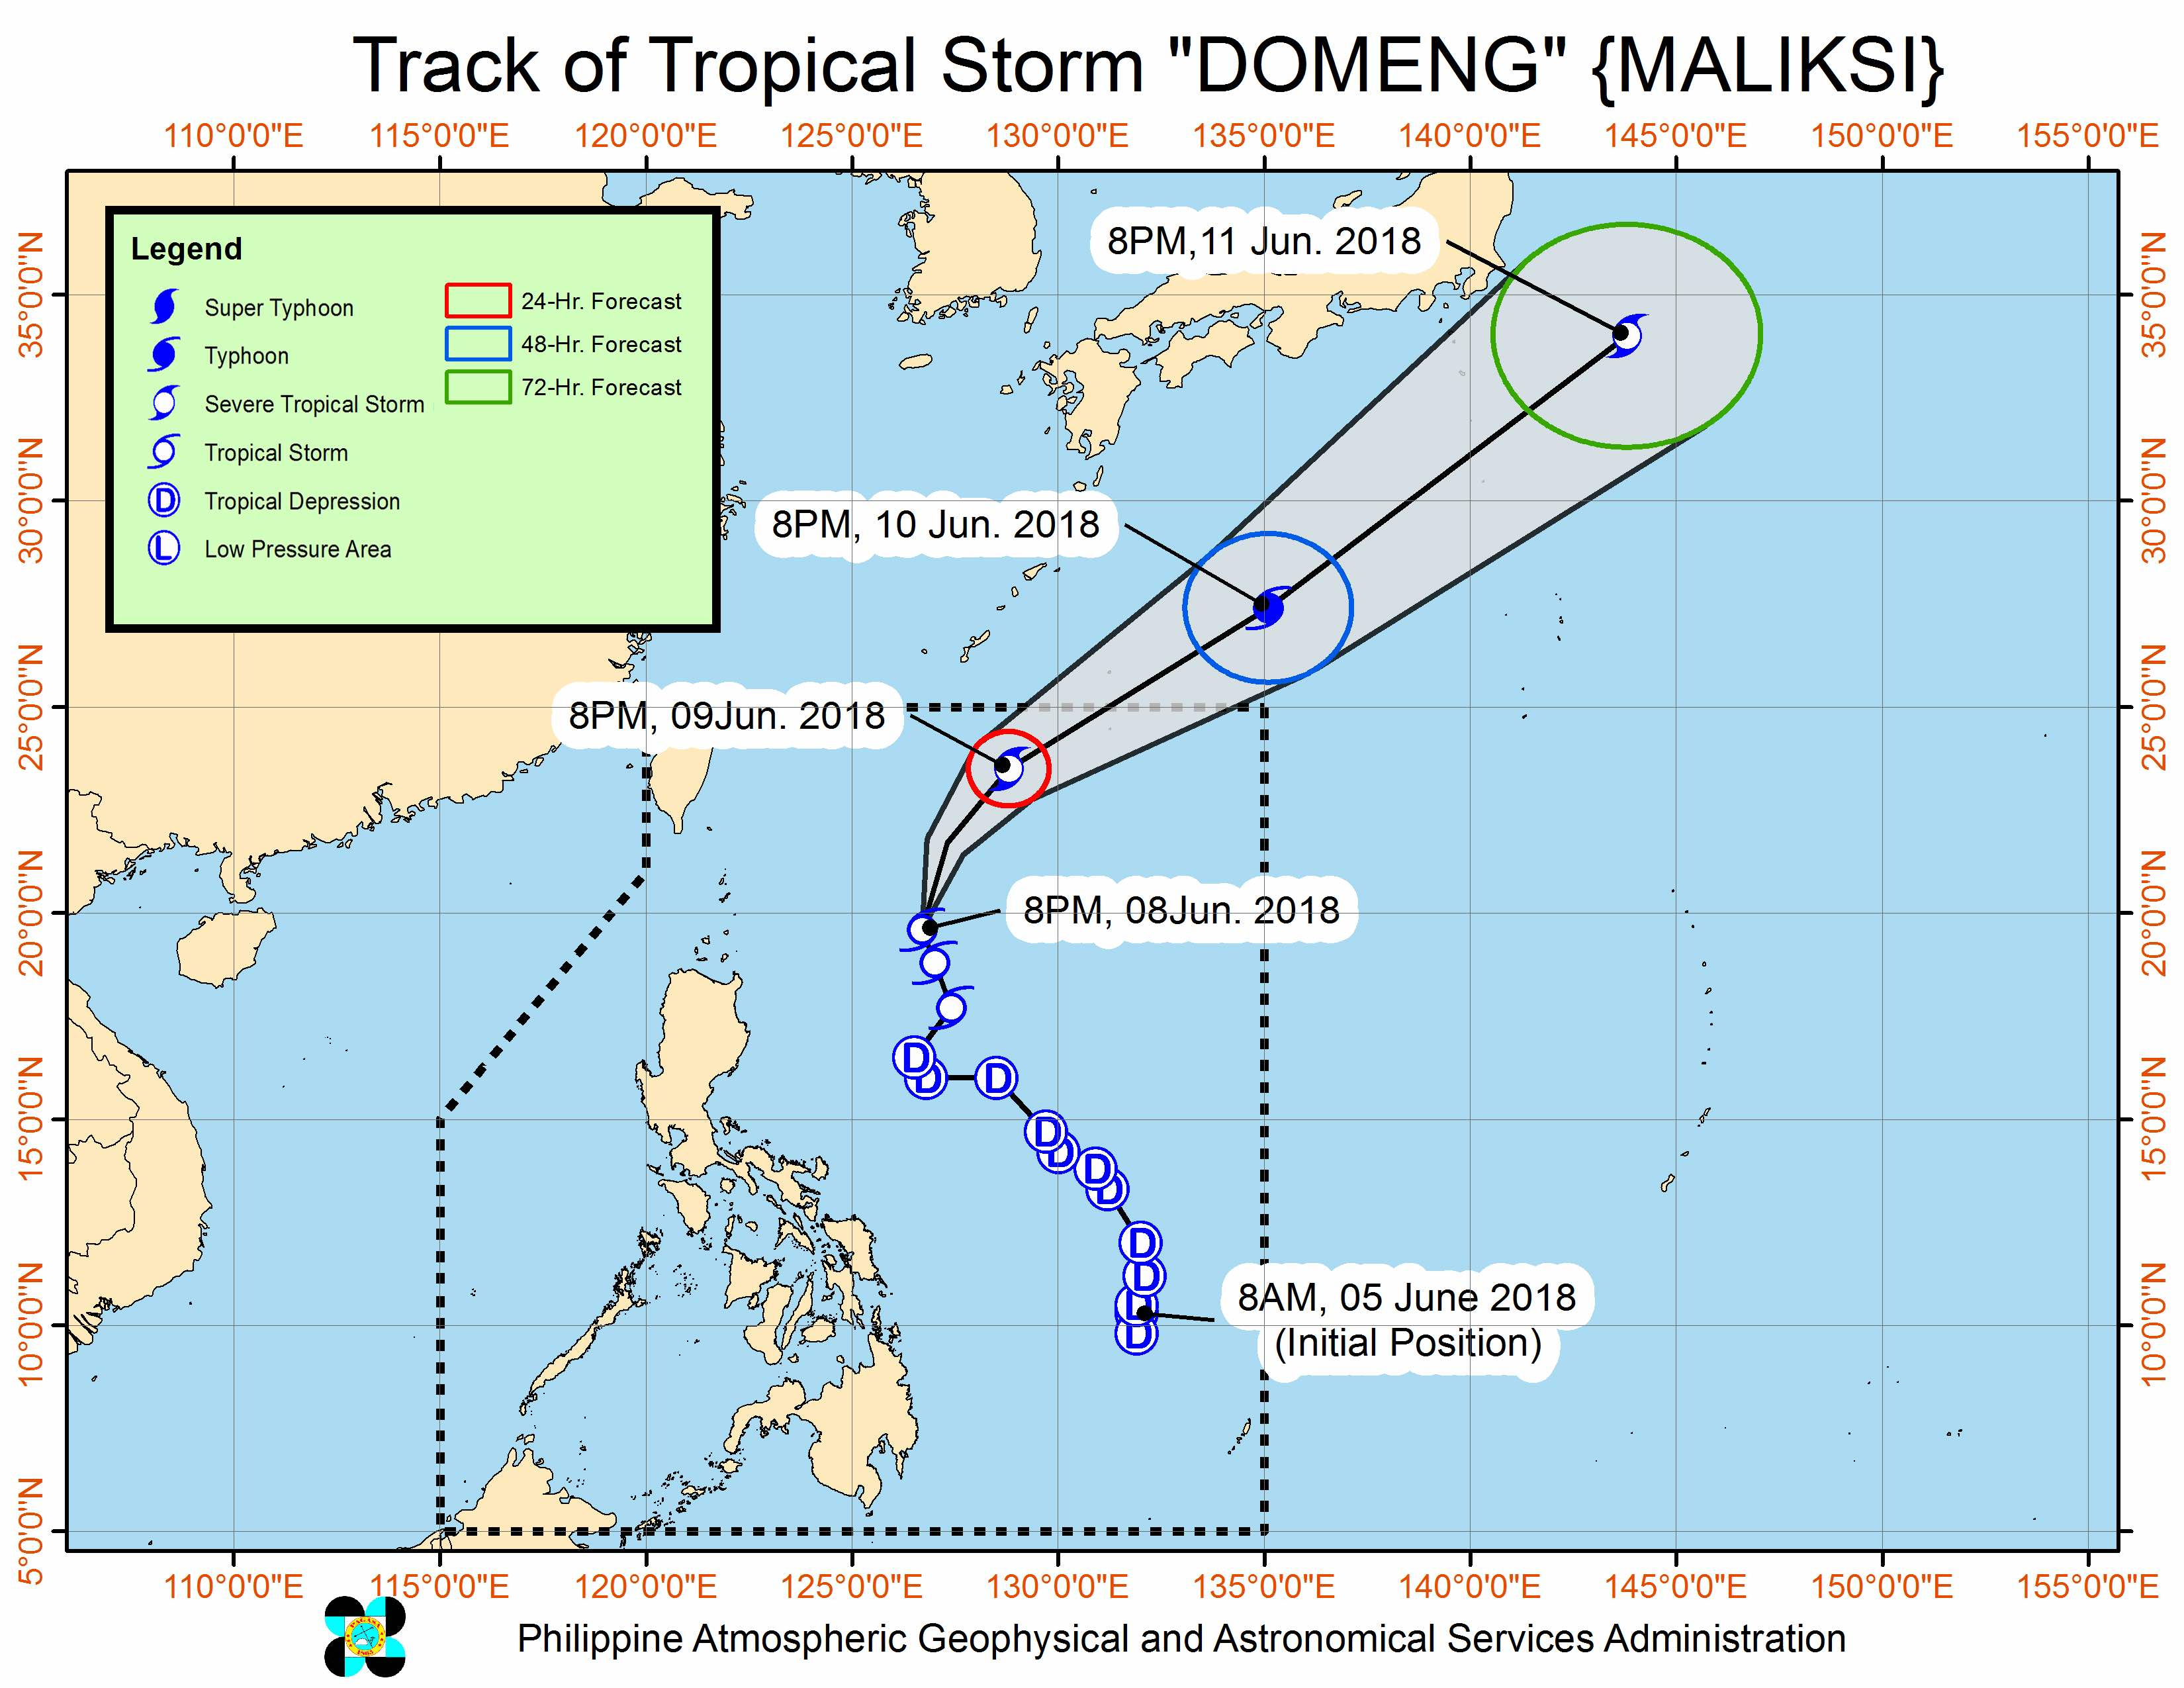 Forecast track of Tropical Storm Domeng (Maliksi) as of June 8, 2018, 11 pm. Image courtesy of PAGASA